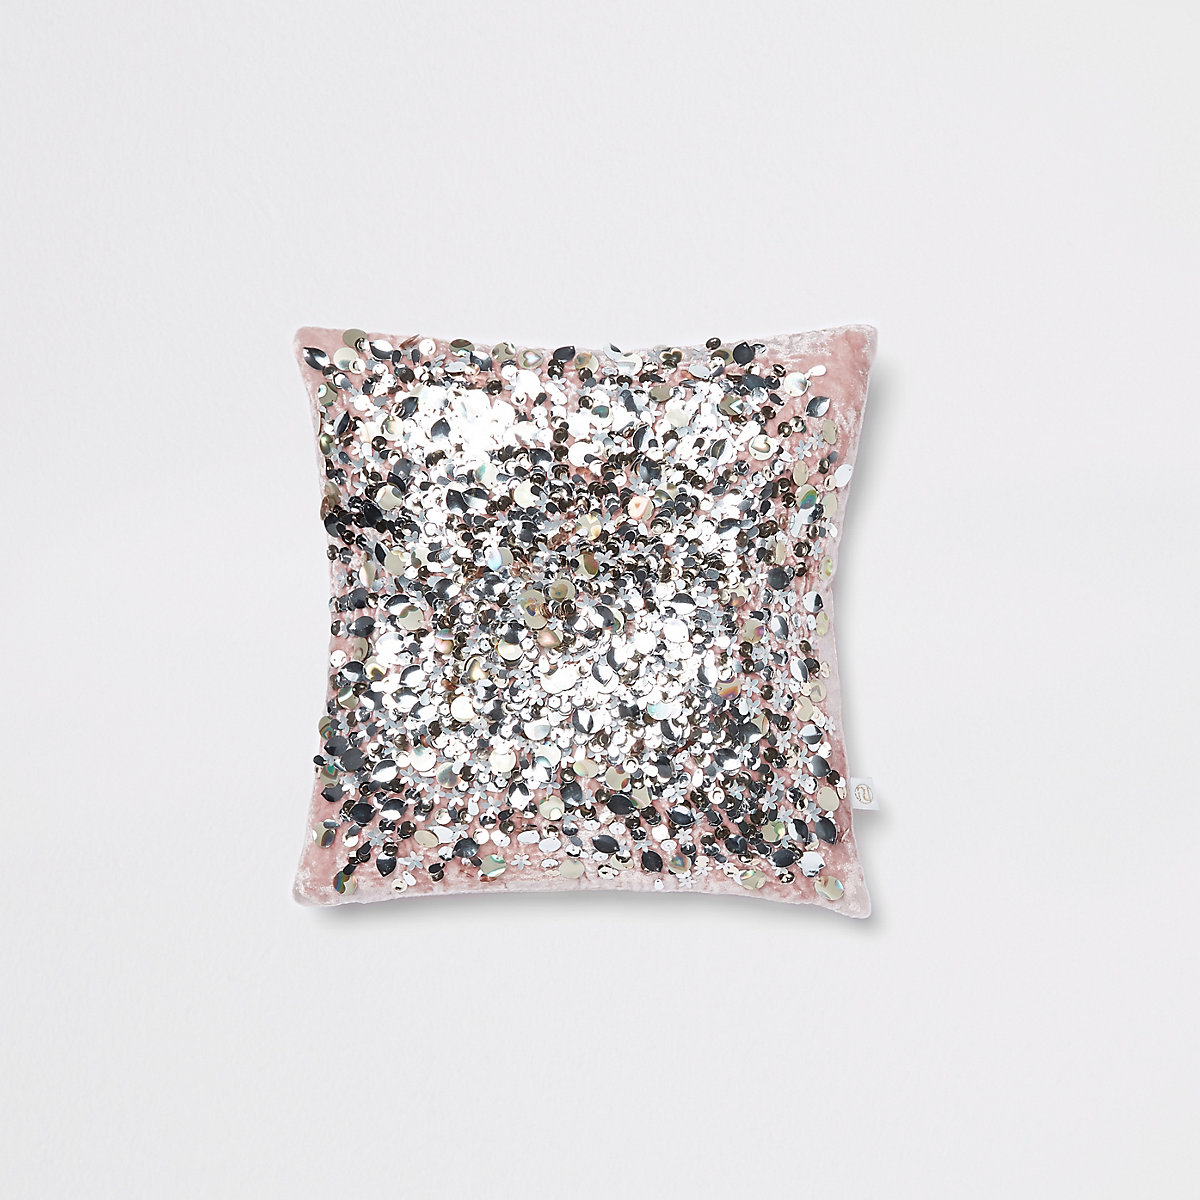 Light pink sequin cuddle cushion